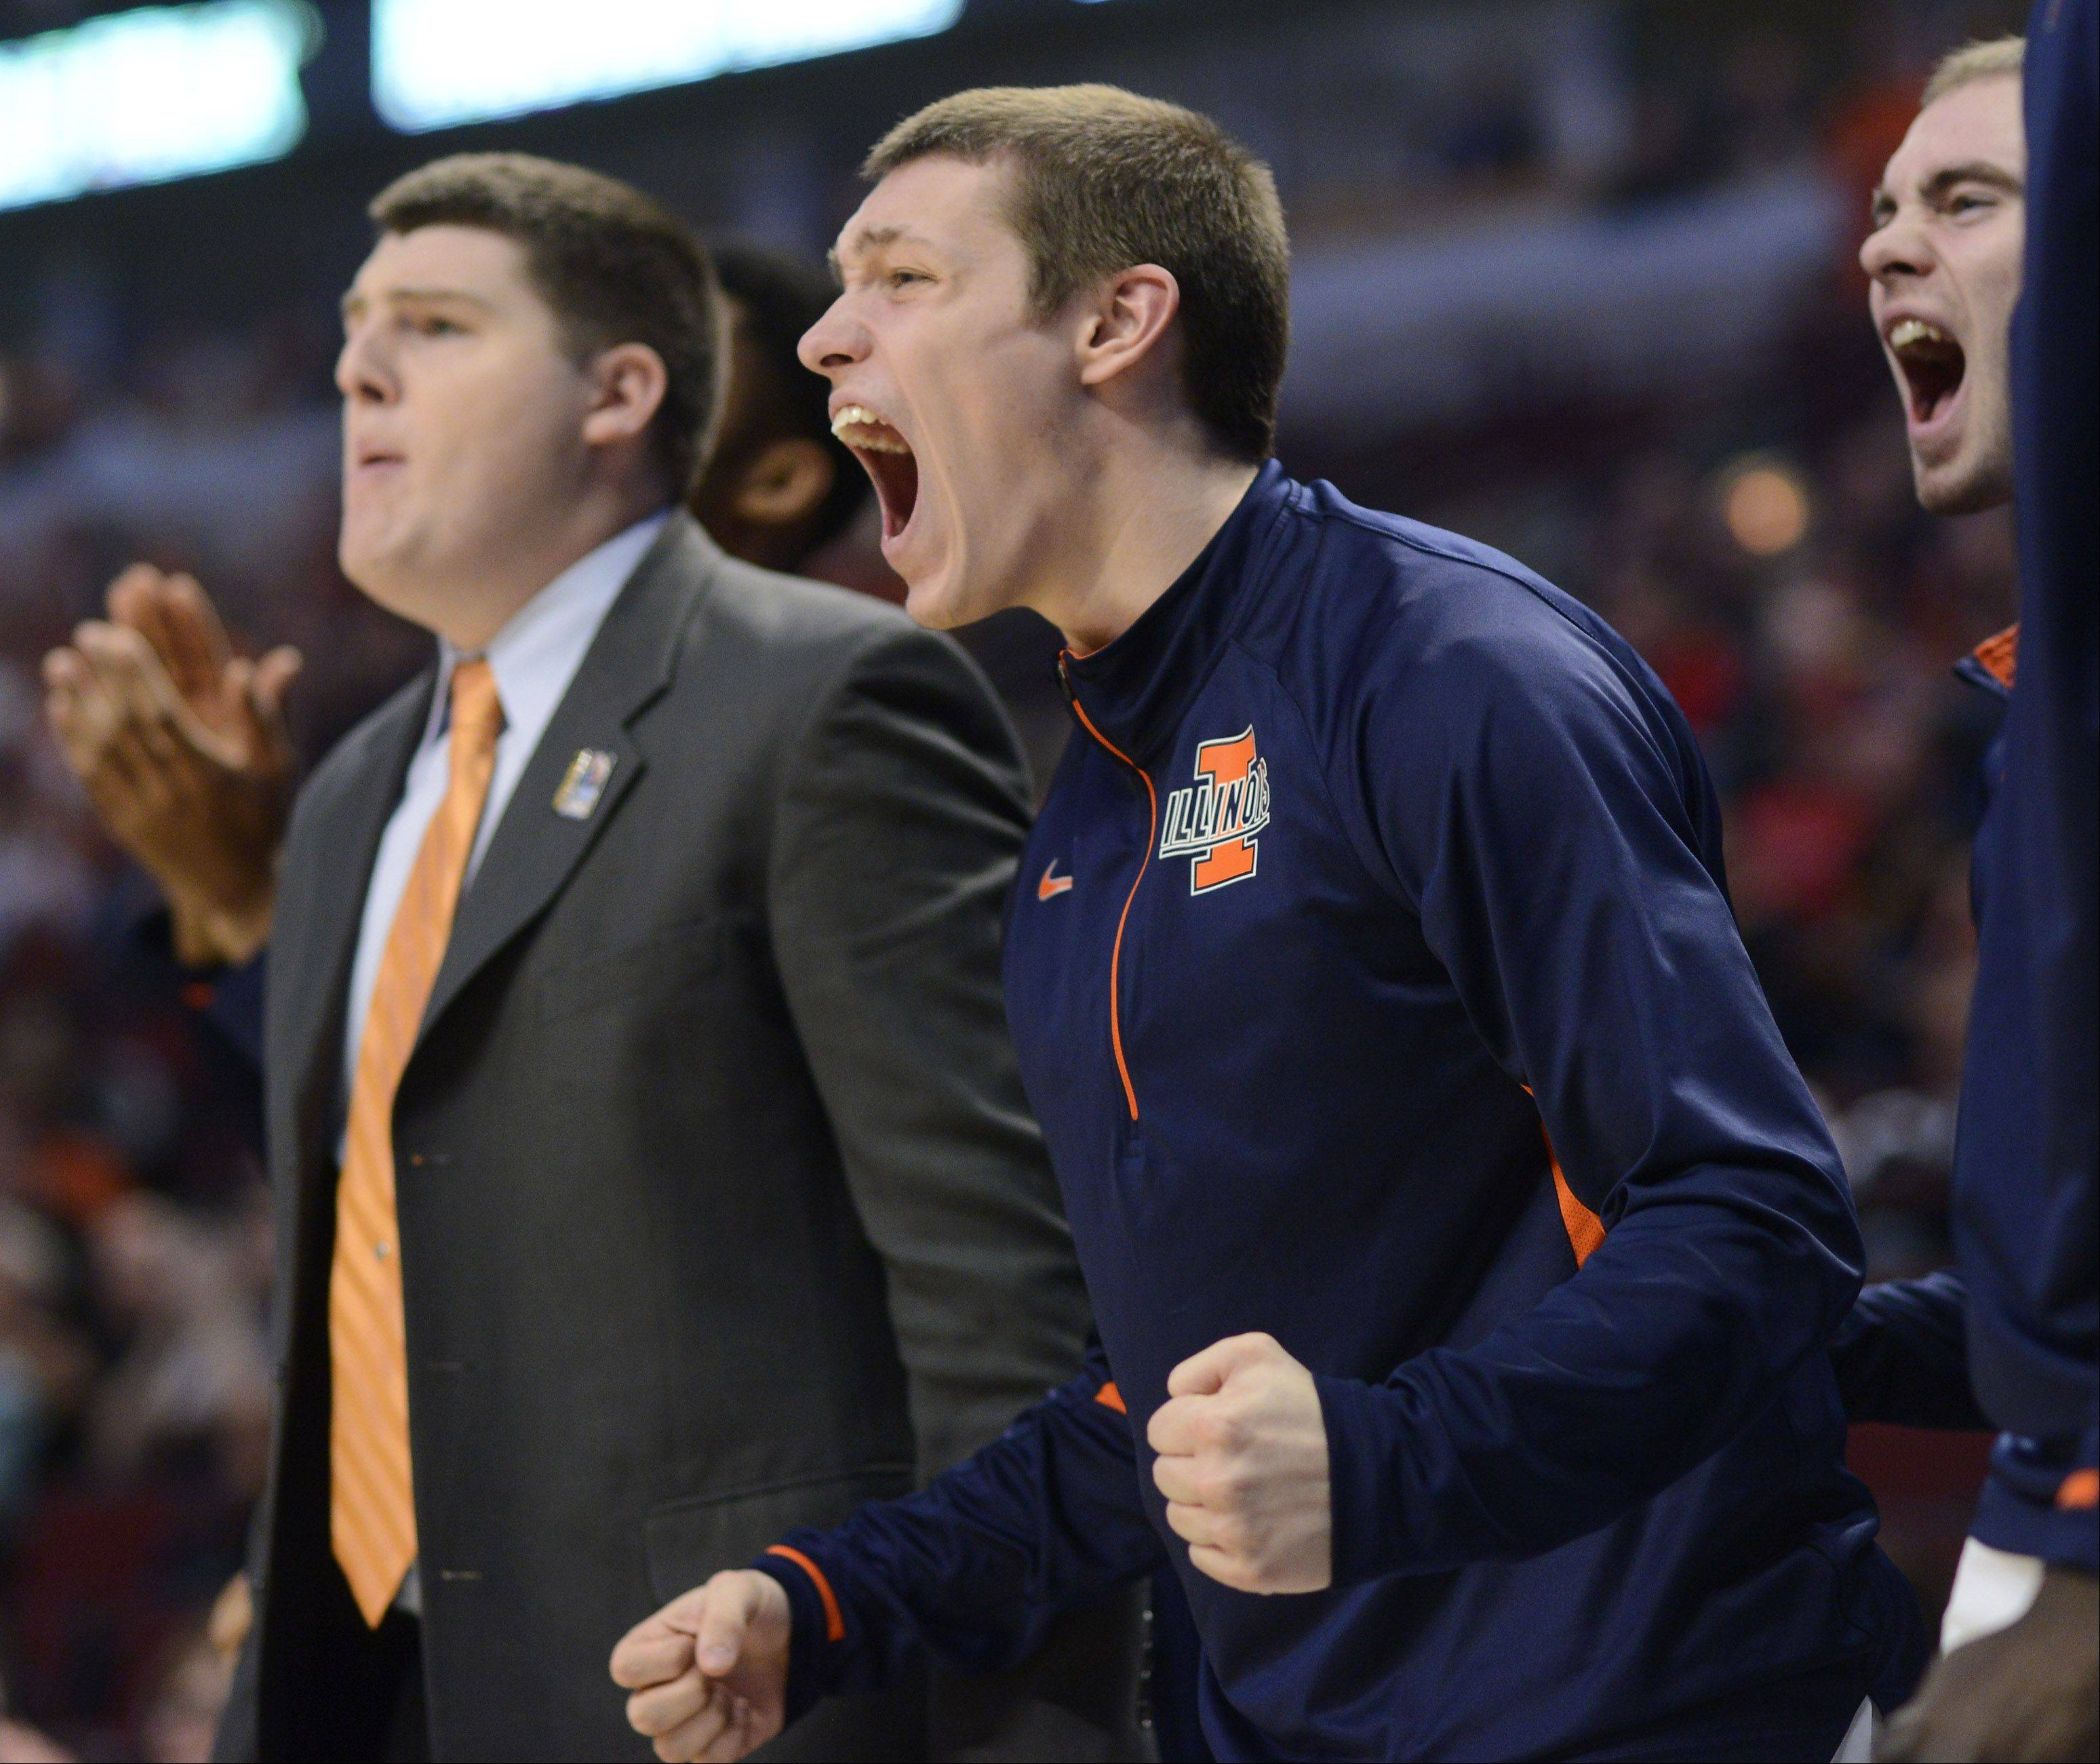 Illinois' Mike LaTulip cheers for his team from the bench.